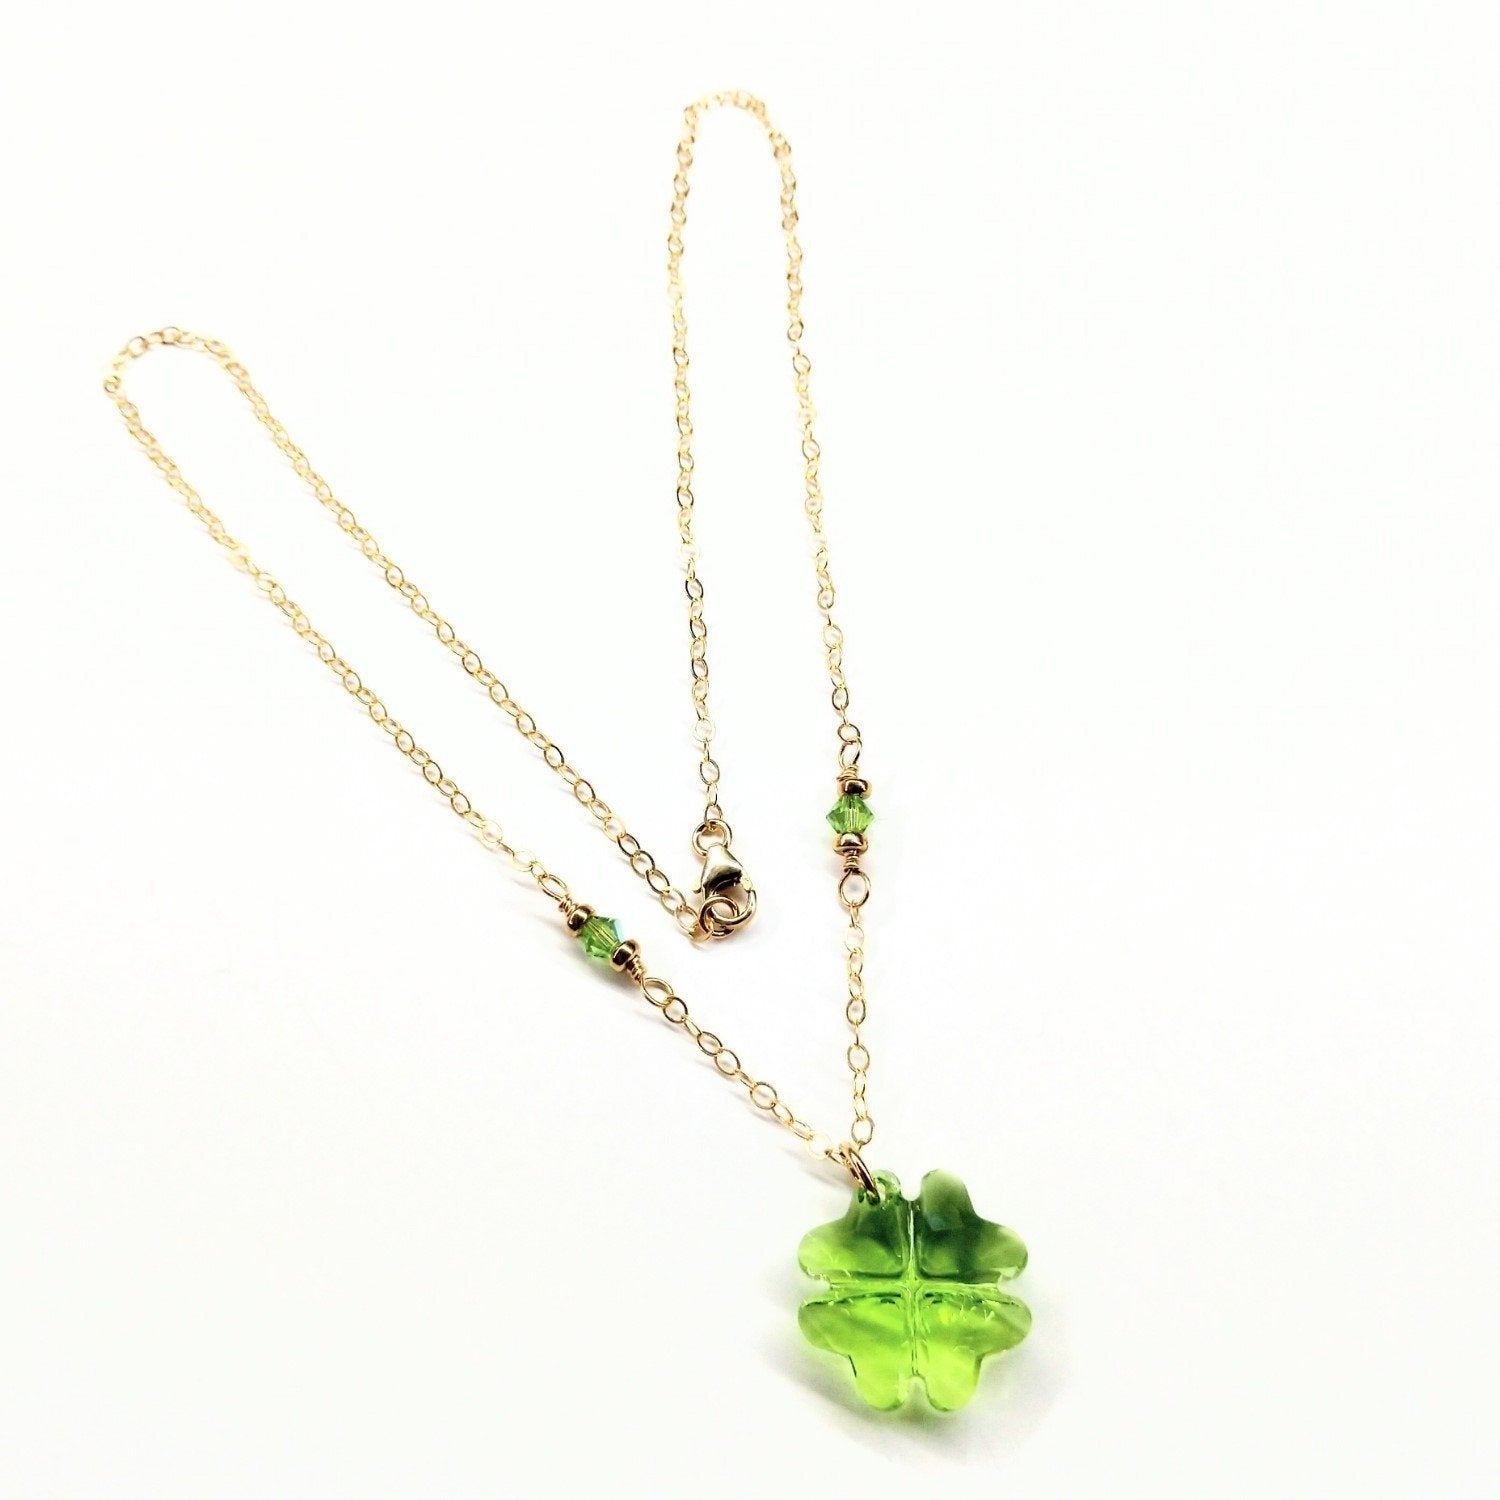 Light Green Sparkly Swarovski Crystal Clover Necklace